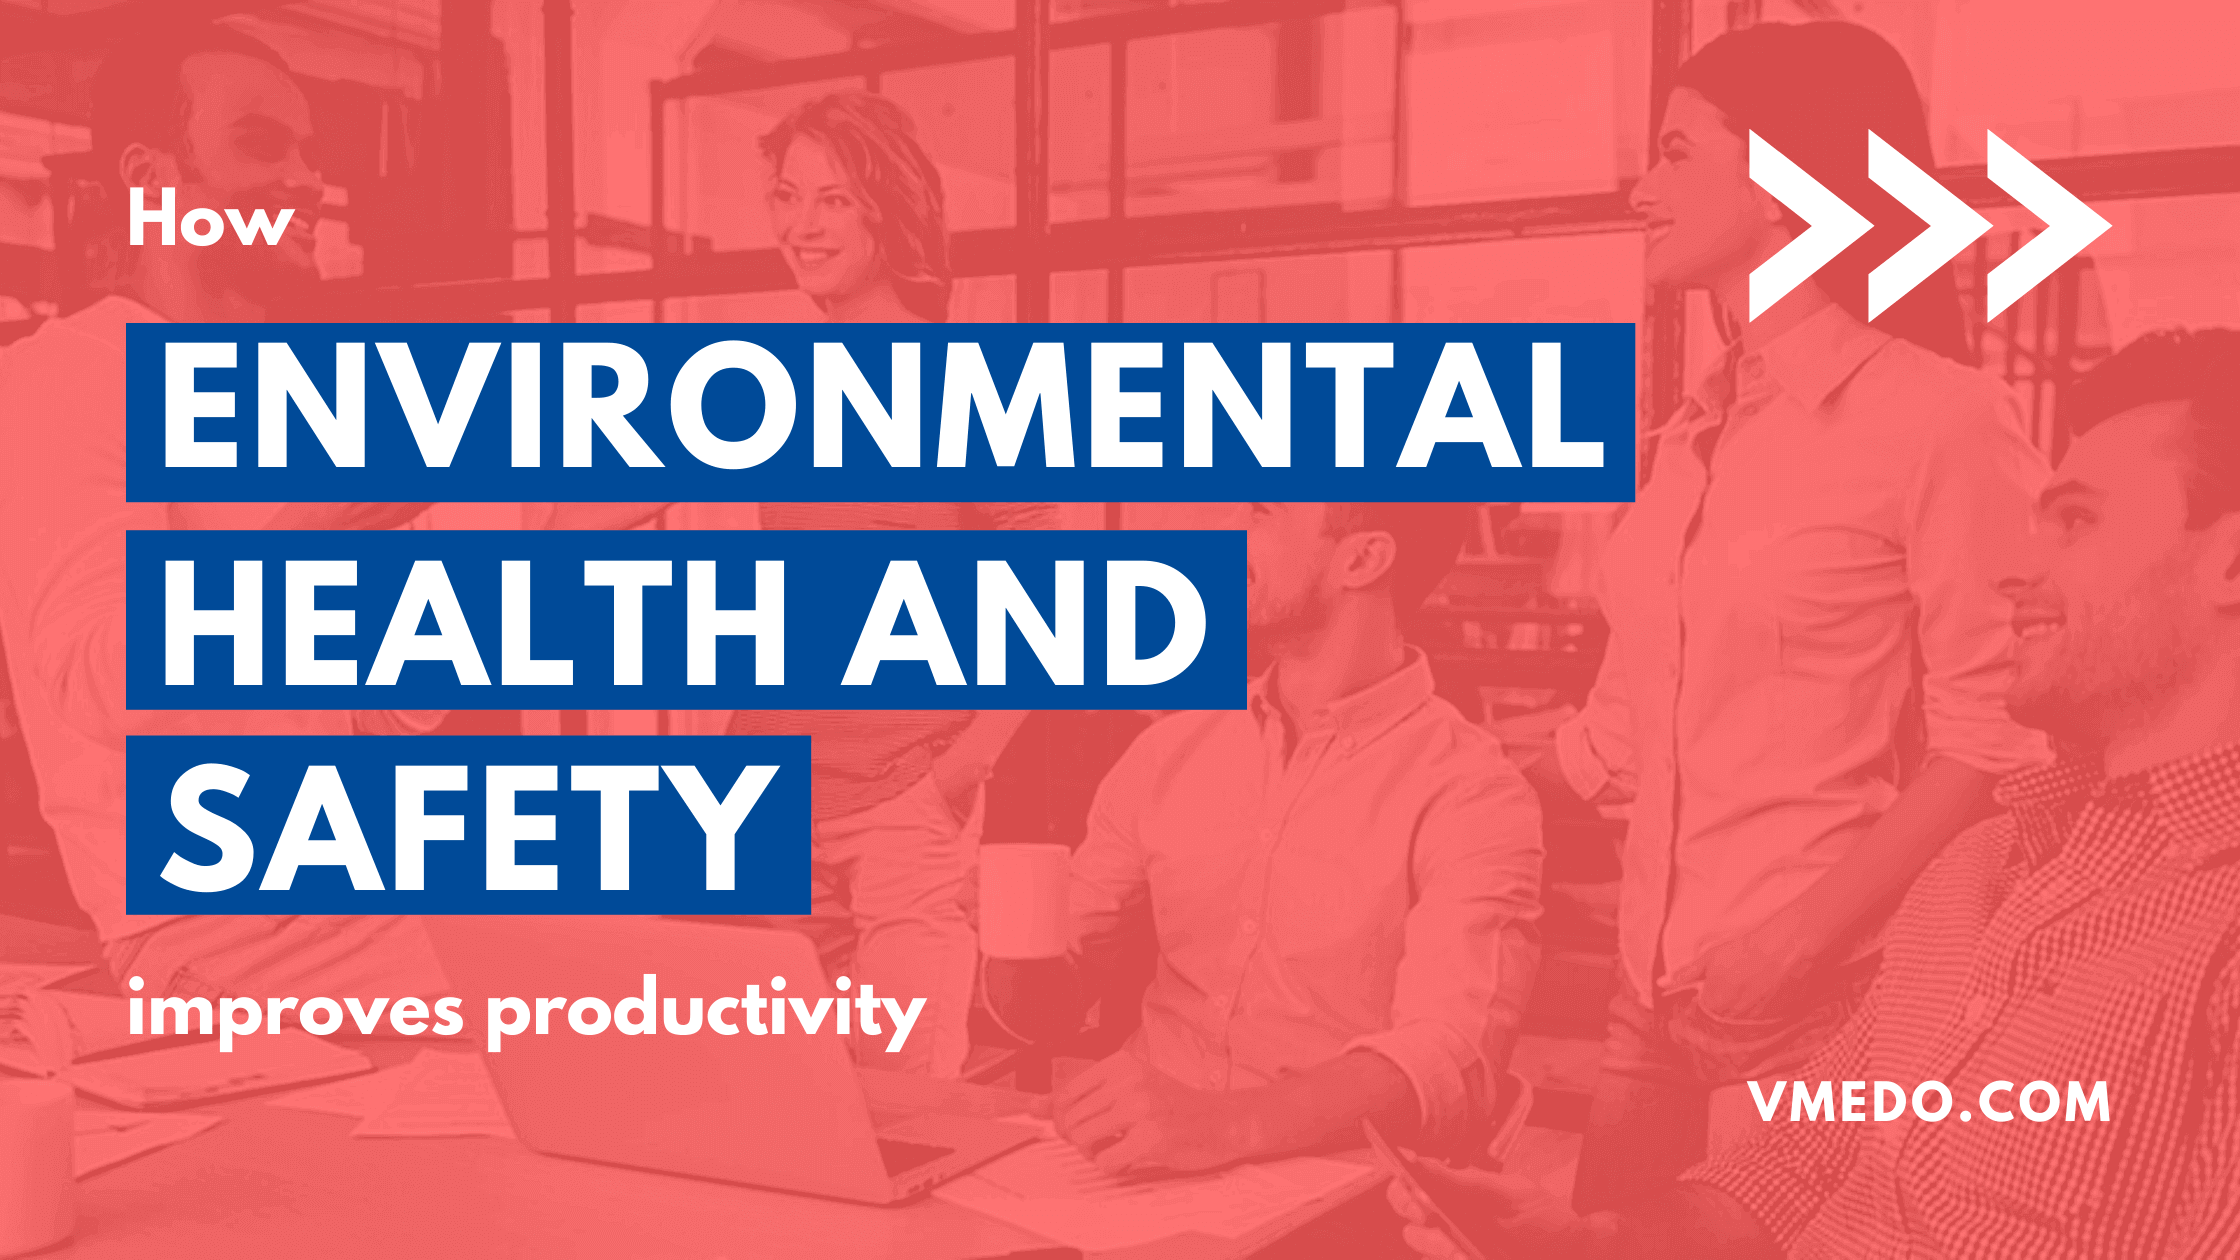 environmental health and safety